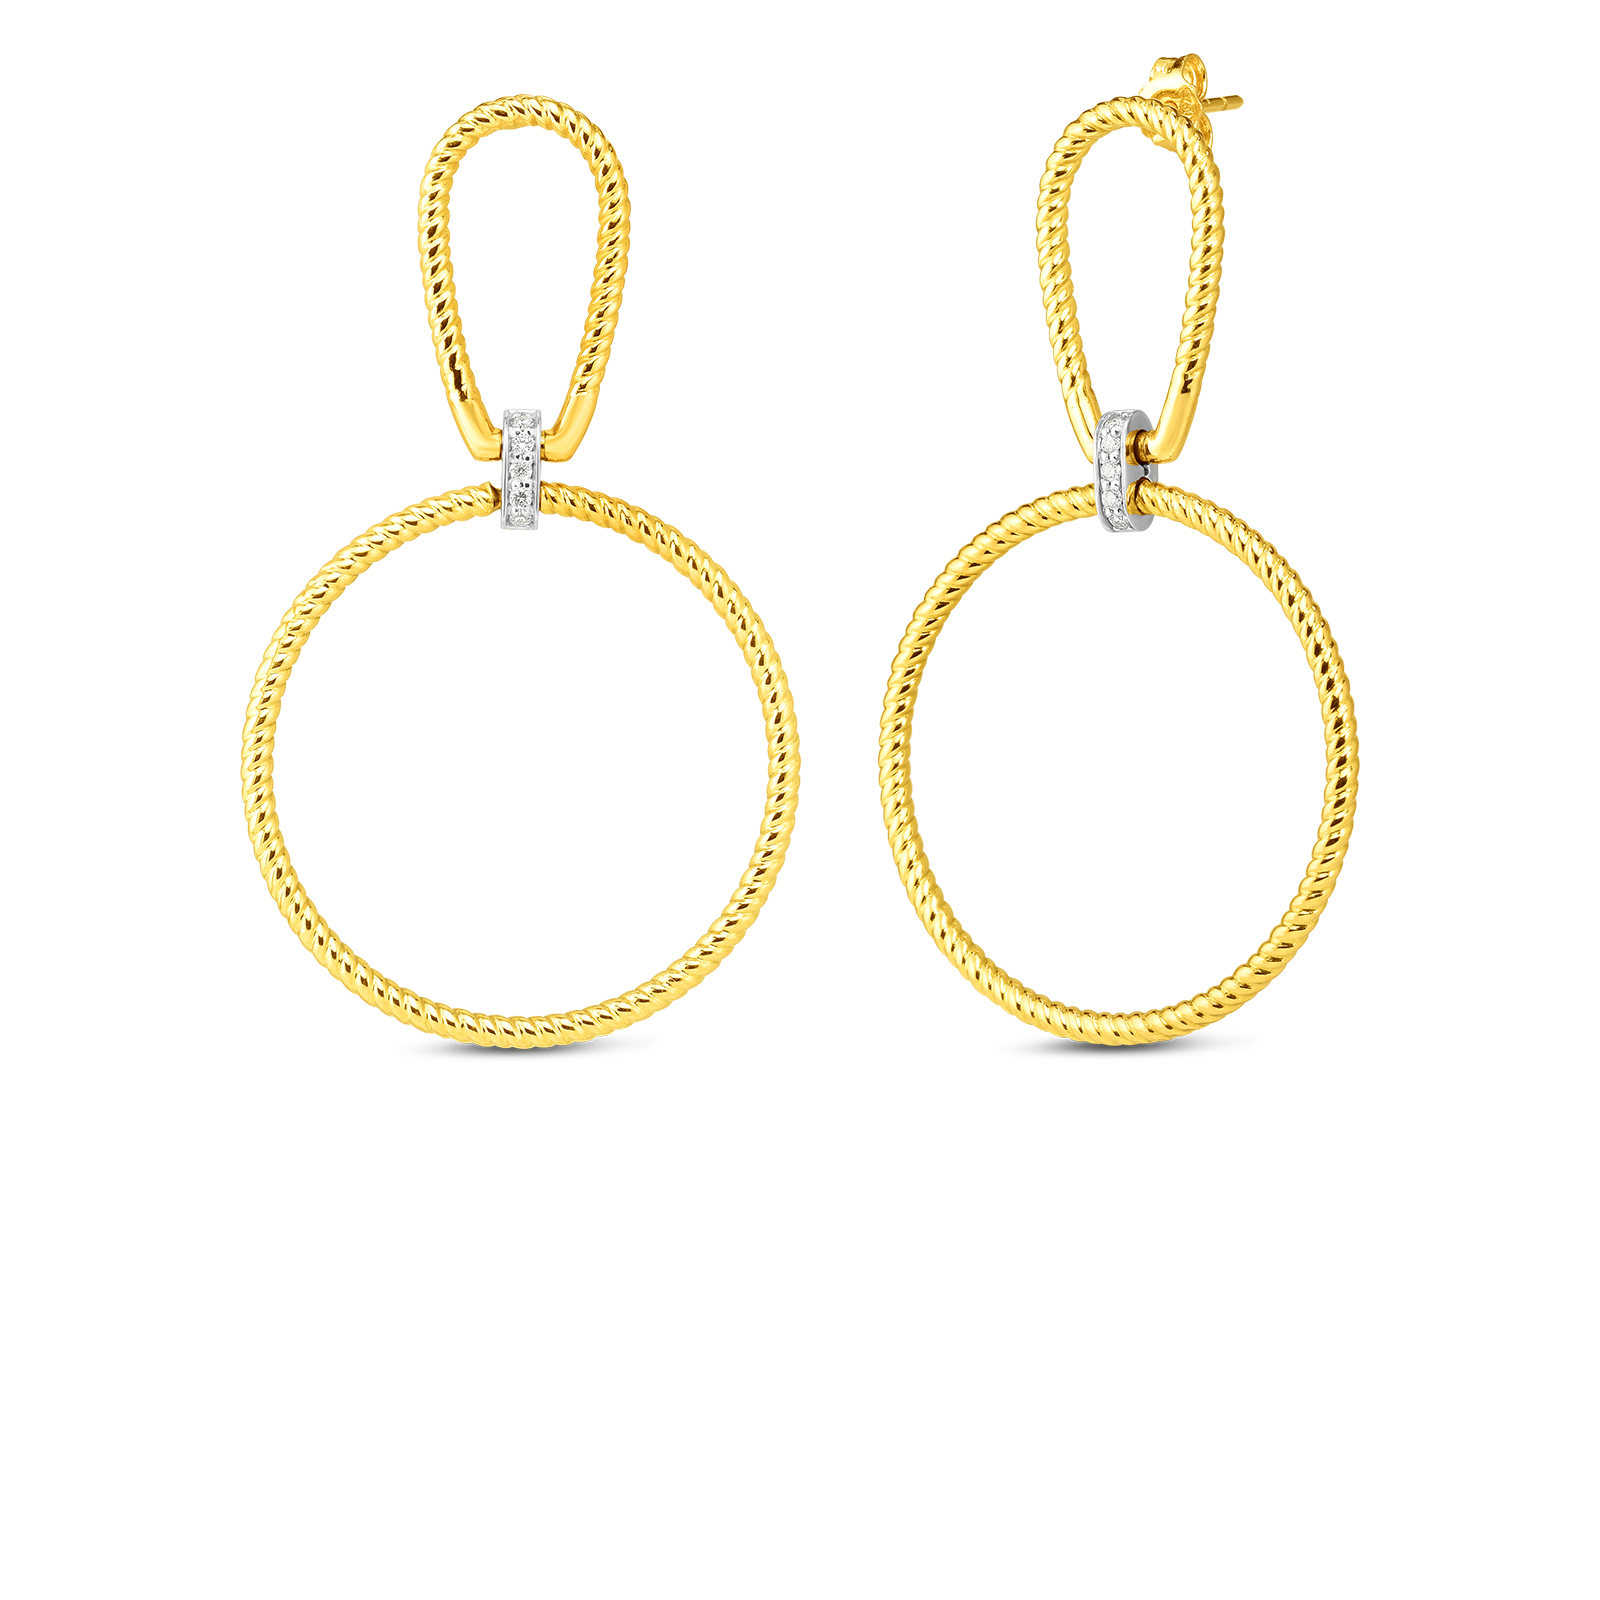 18k open twisted stirrup circle drop earring with diamond accent